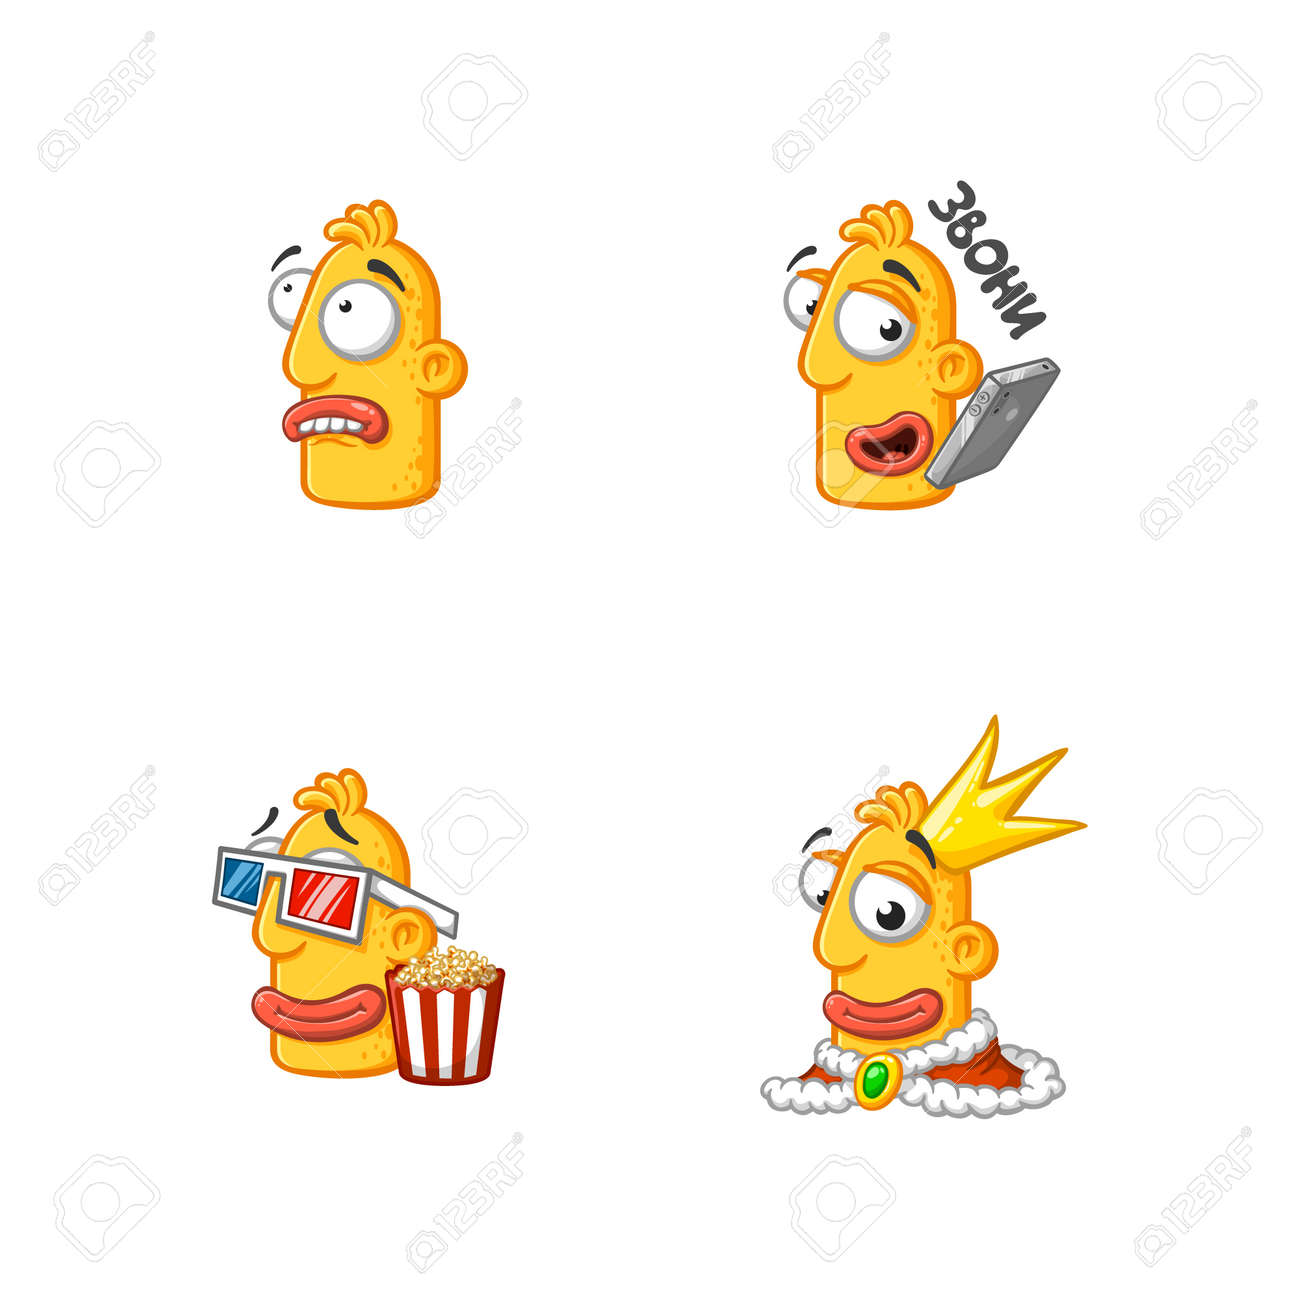 Set of special funny cartoon stickers character head, yellow color, with large lips and eyes in a vector on a white background. - 159029810